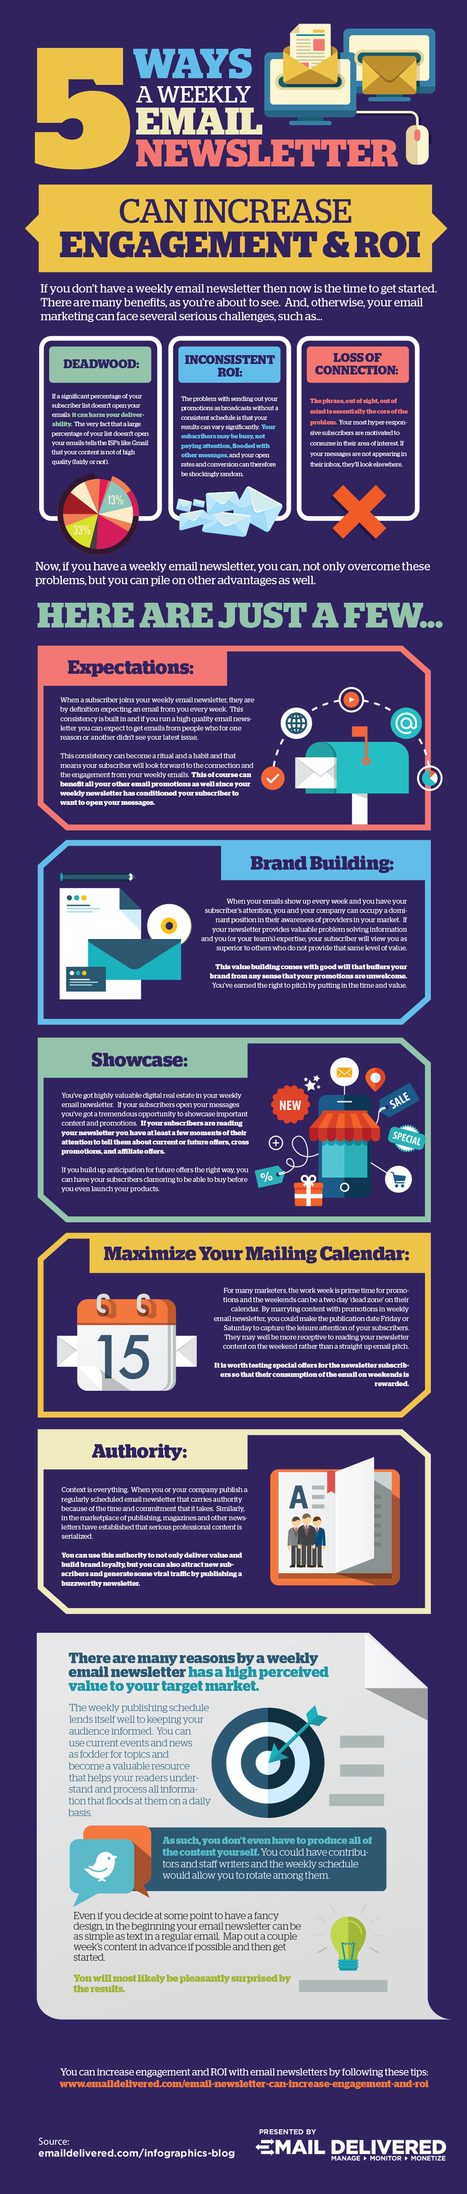 5 Ways a Weekly Email Newsletter Can Increase Engagement and ROI-Infographic - | Email Delivered | Scoop.it